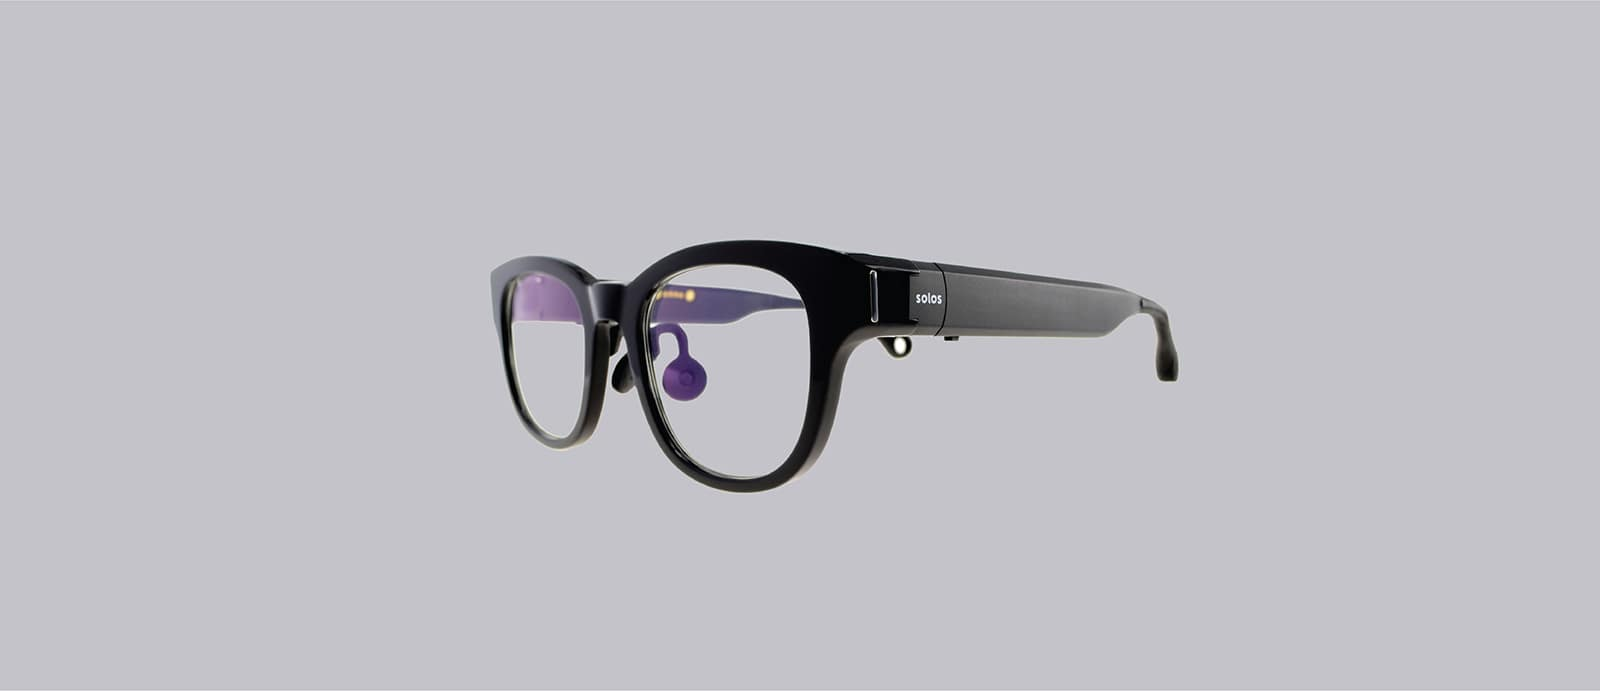 Solos argon glasses perspective view